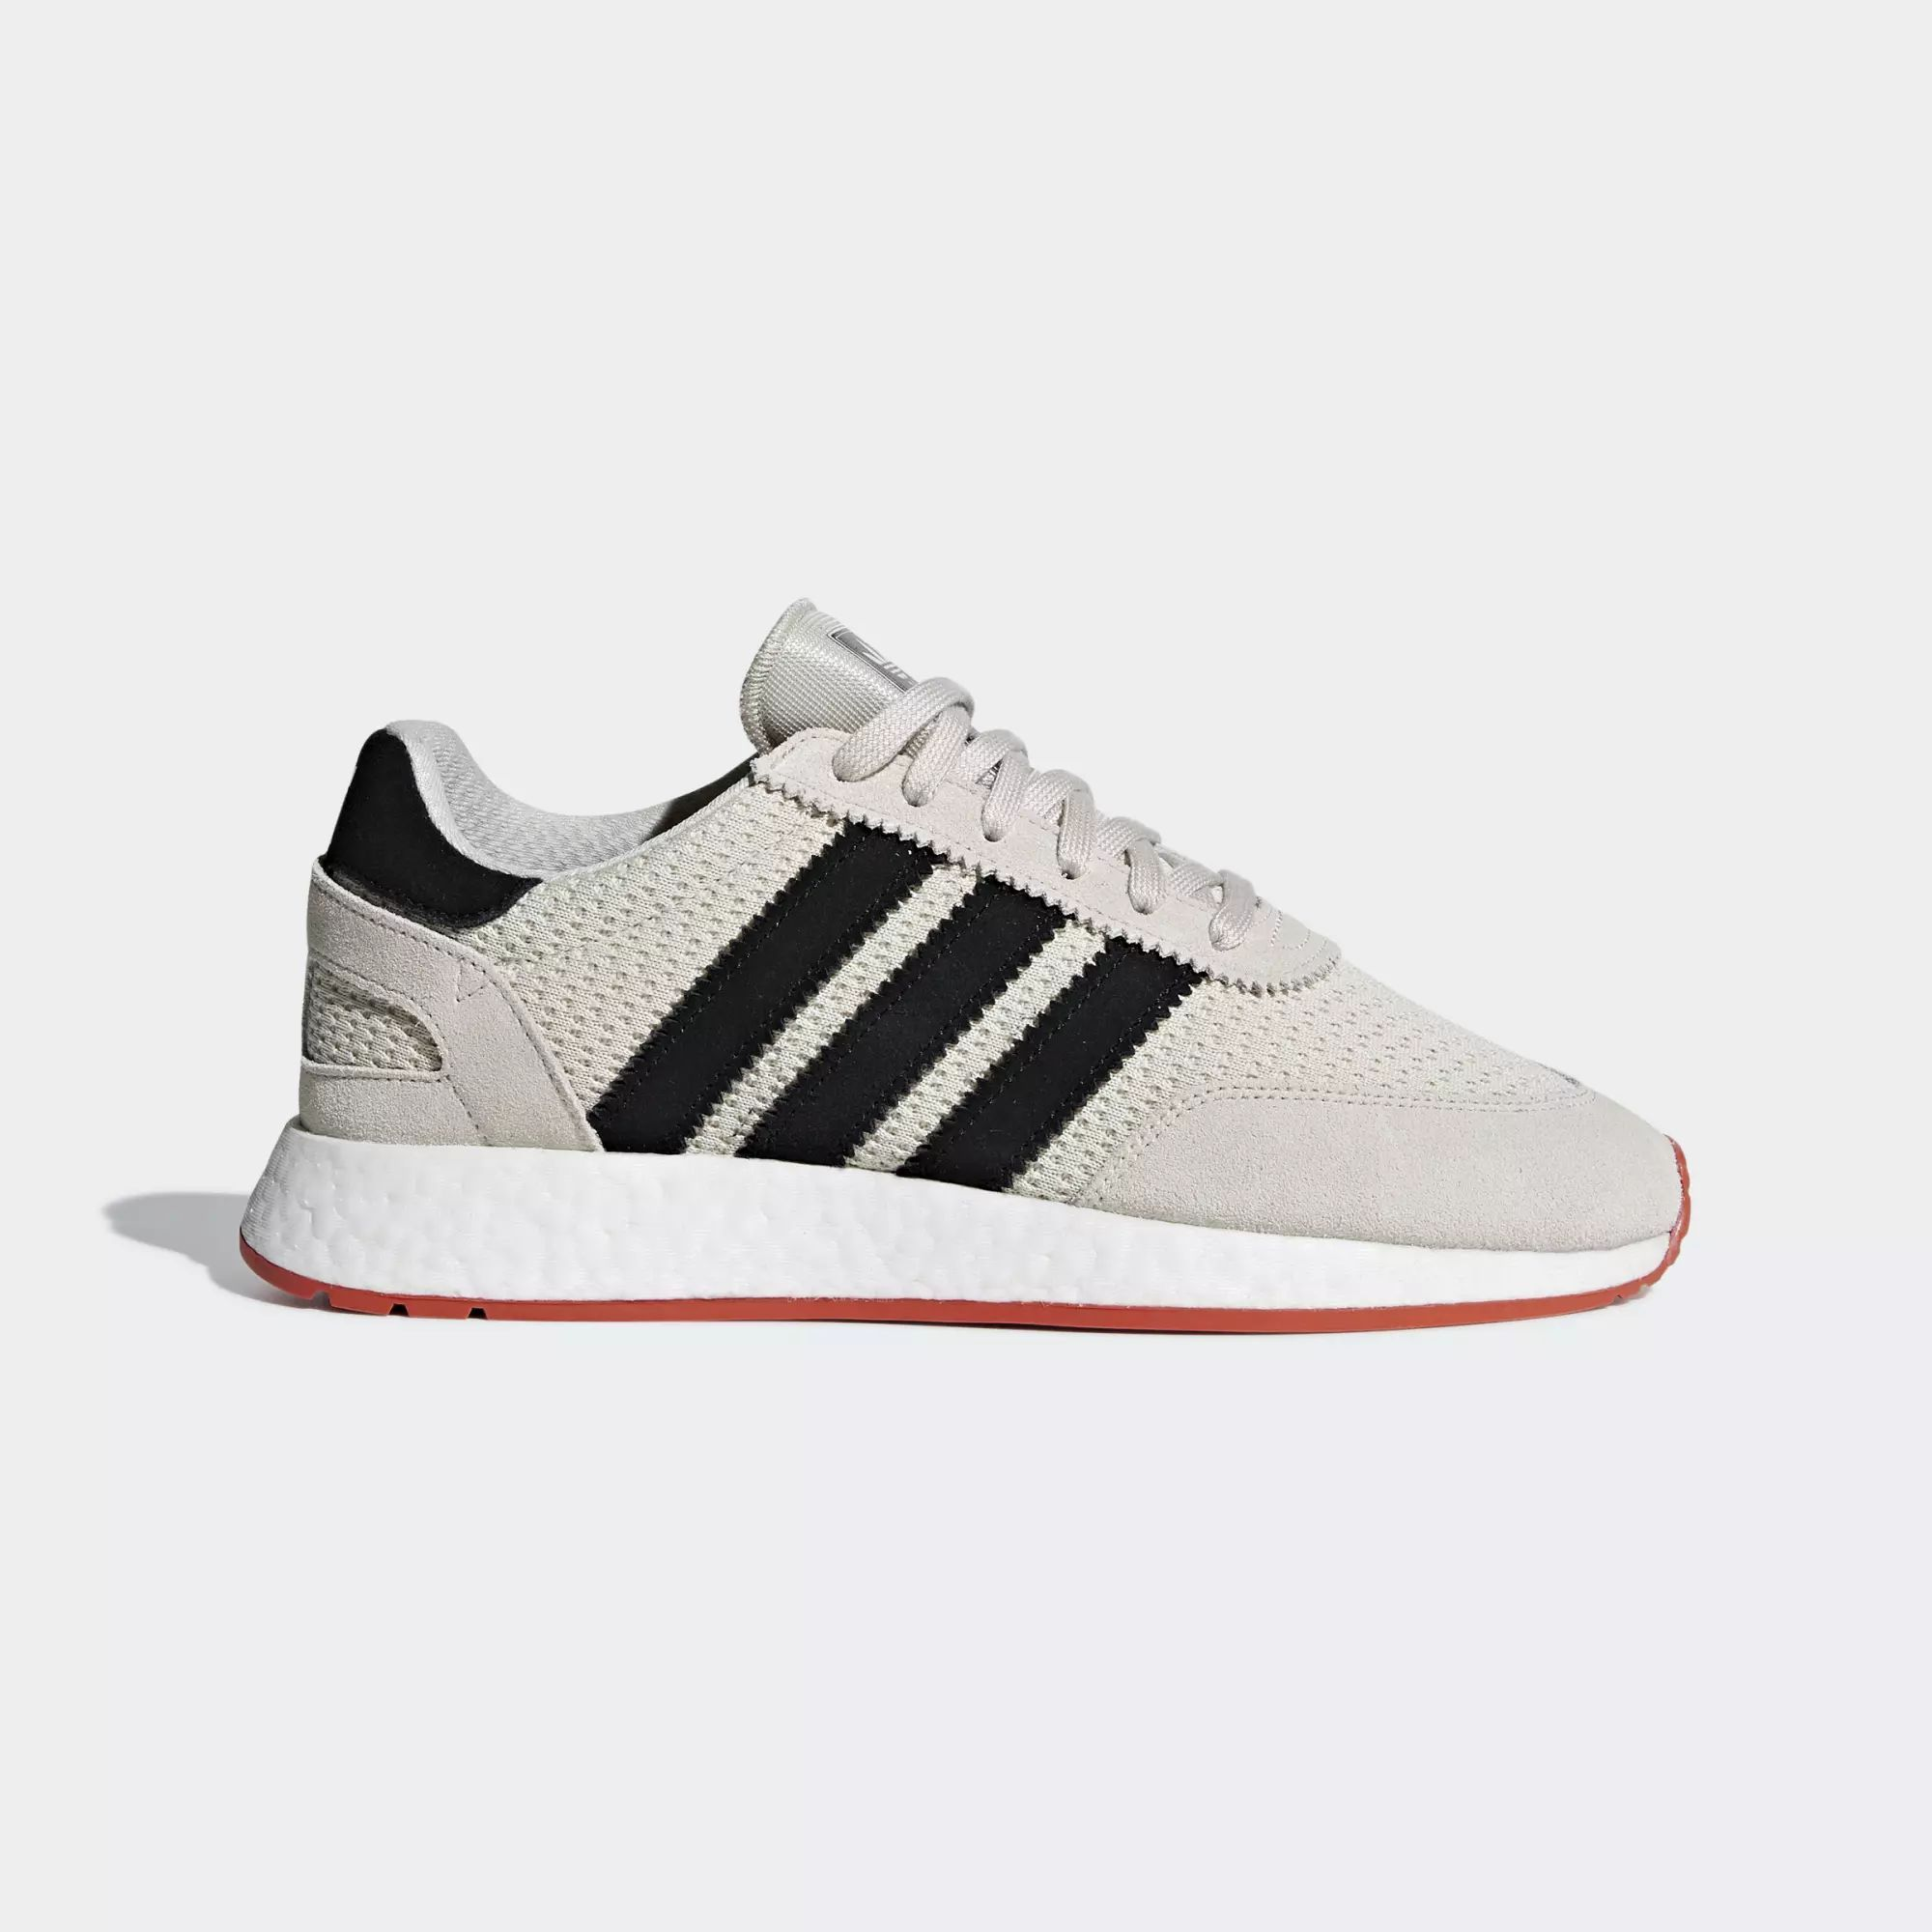 Adidas I-5923 Shoes - Clear Brown   Core Black   Raw Amber  176cf990d